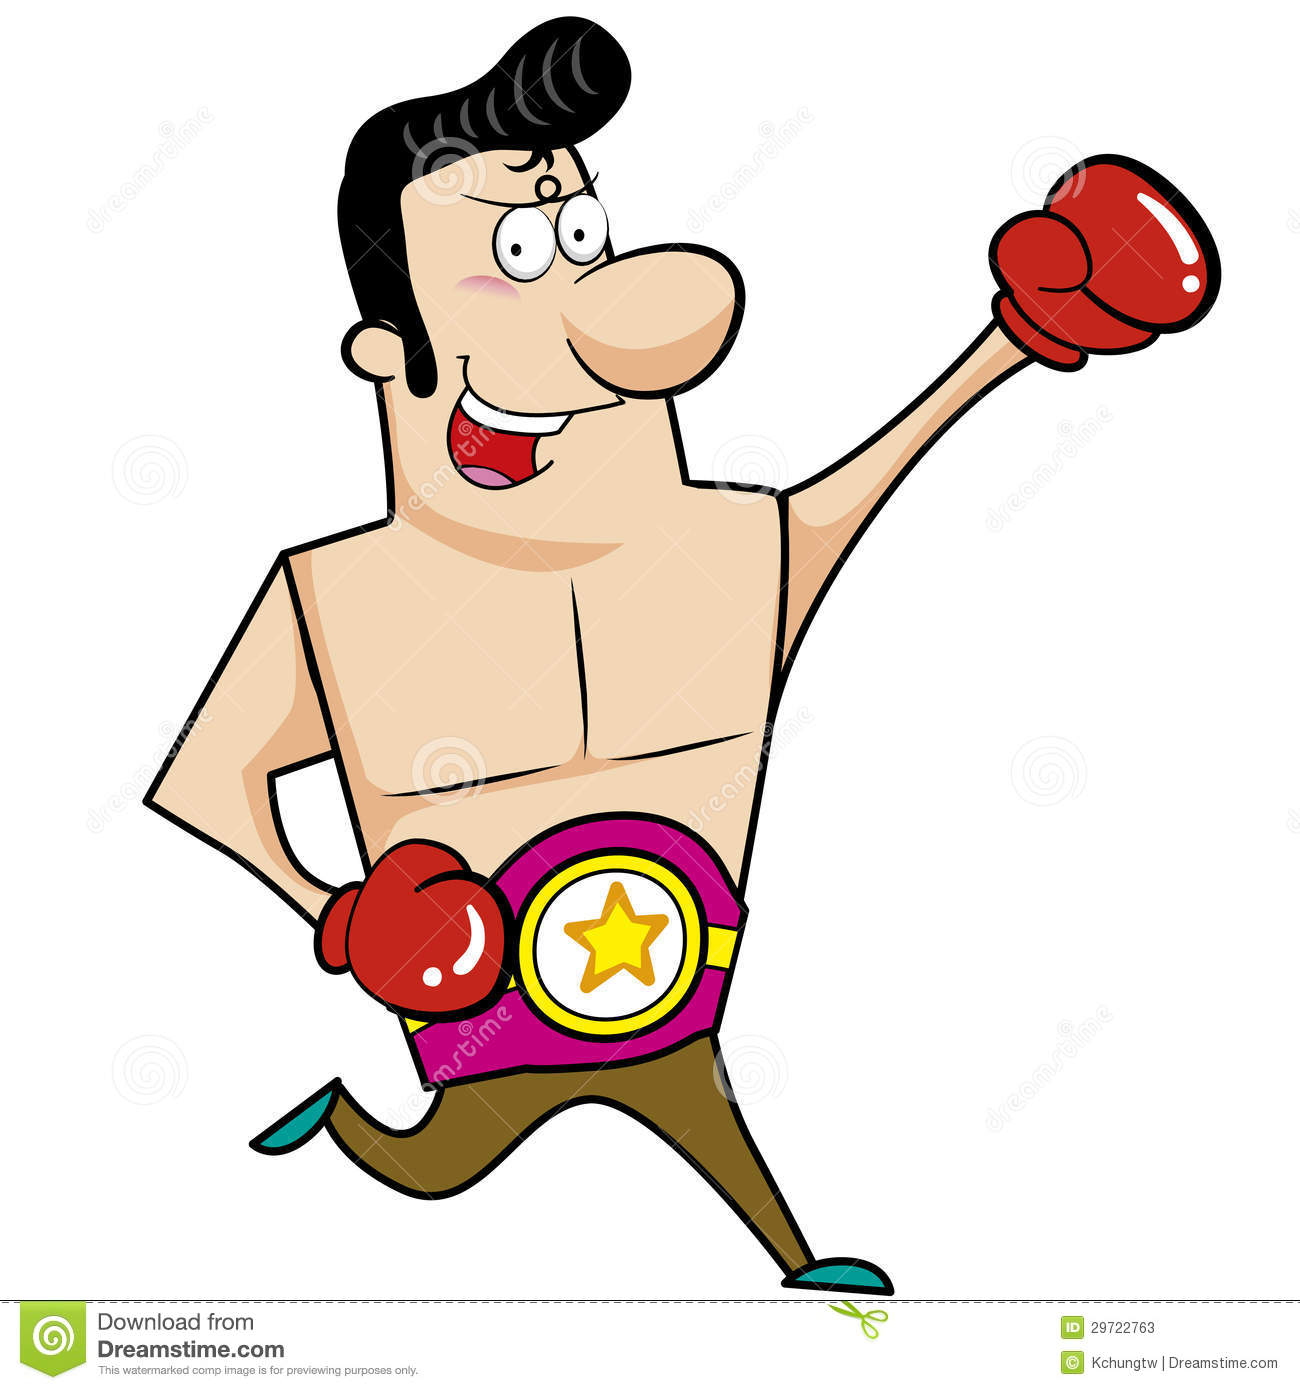 Cartoon boxer with boxing gloves vector illustration.